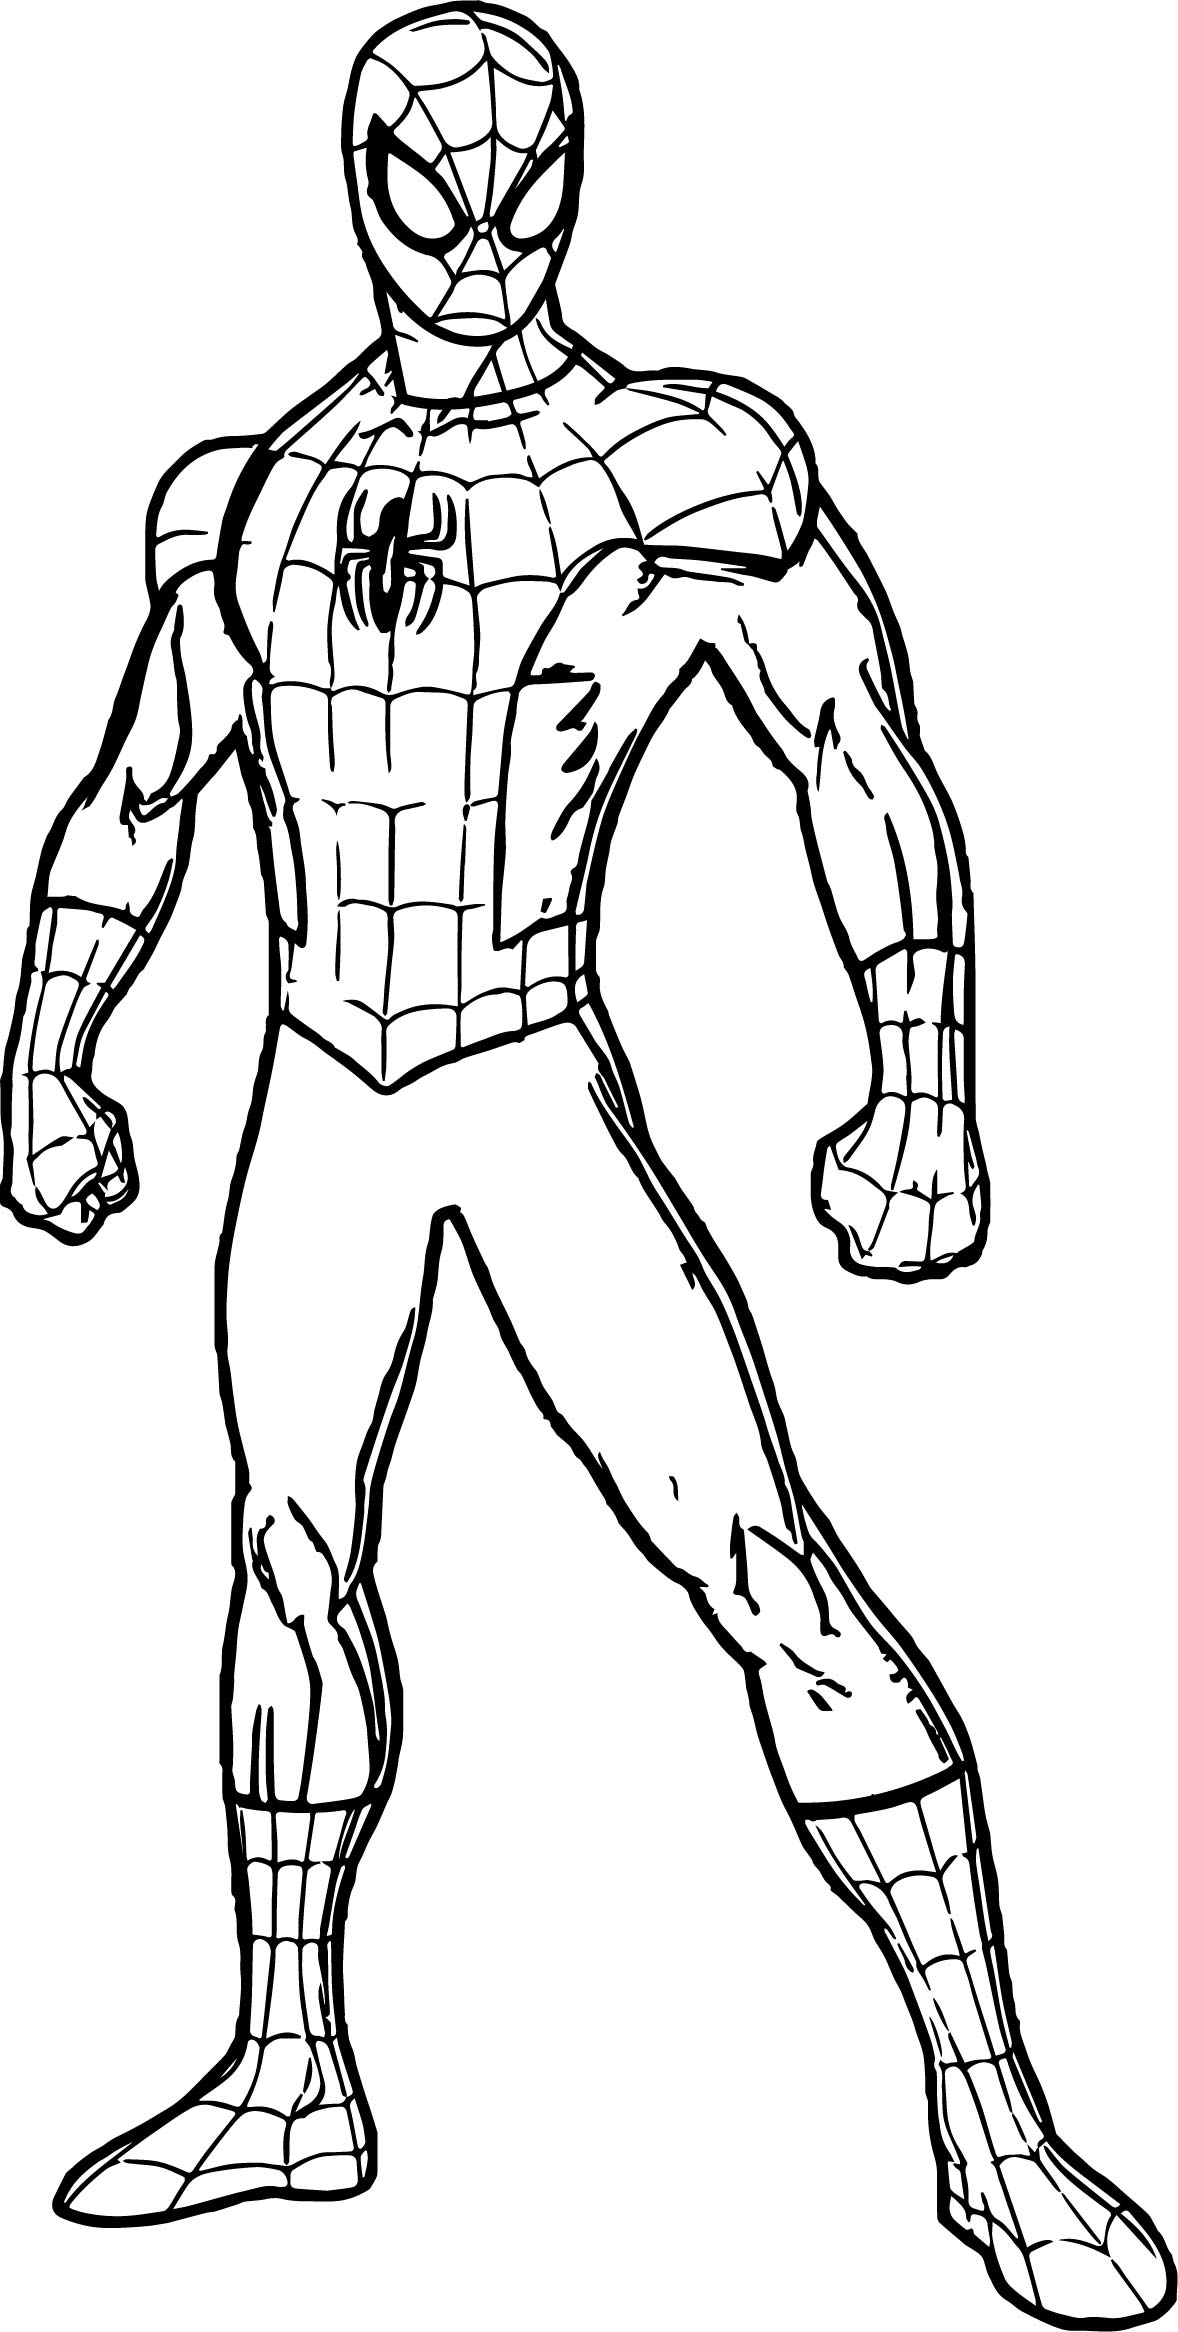 coloring spiderman spiderman coloring pages download free coloring sheets spiderman coloring